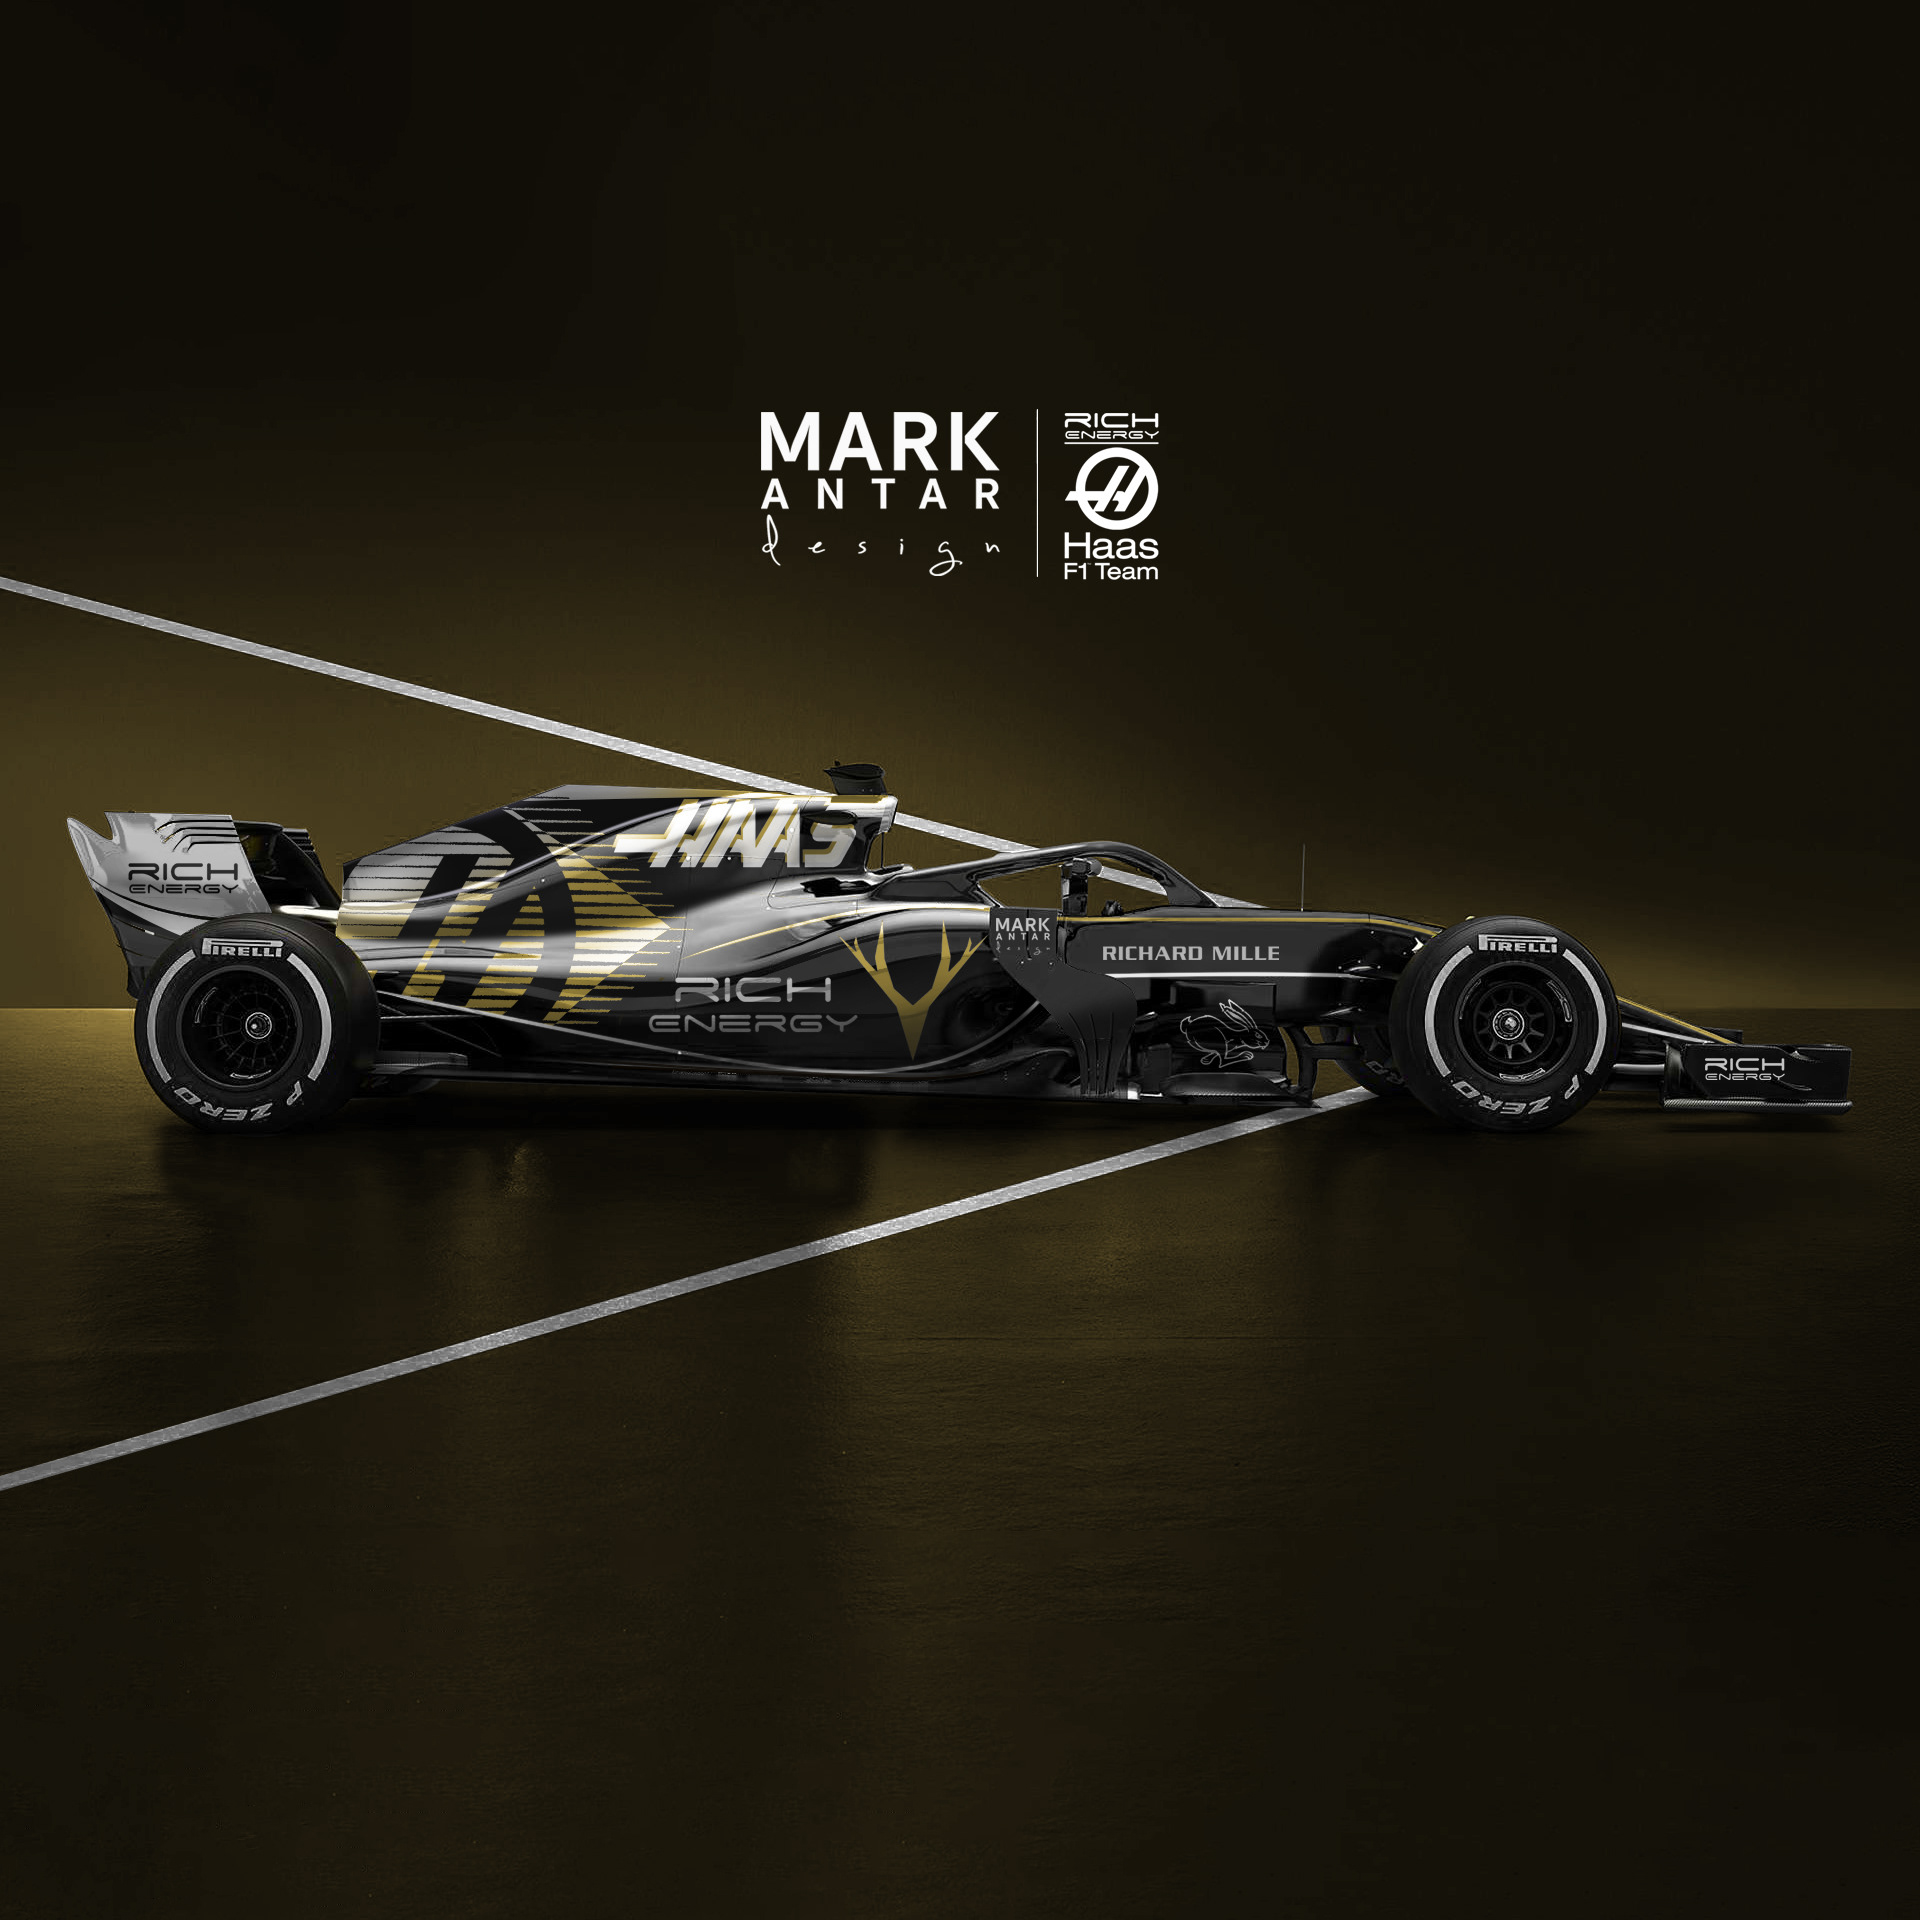 Renault Reveal Yellow Race Livery For 2016: F1 Livery Designer